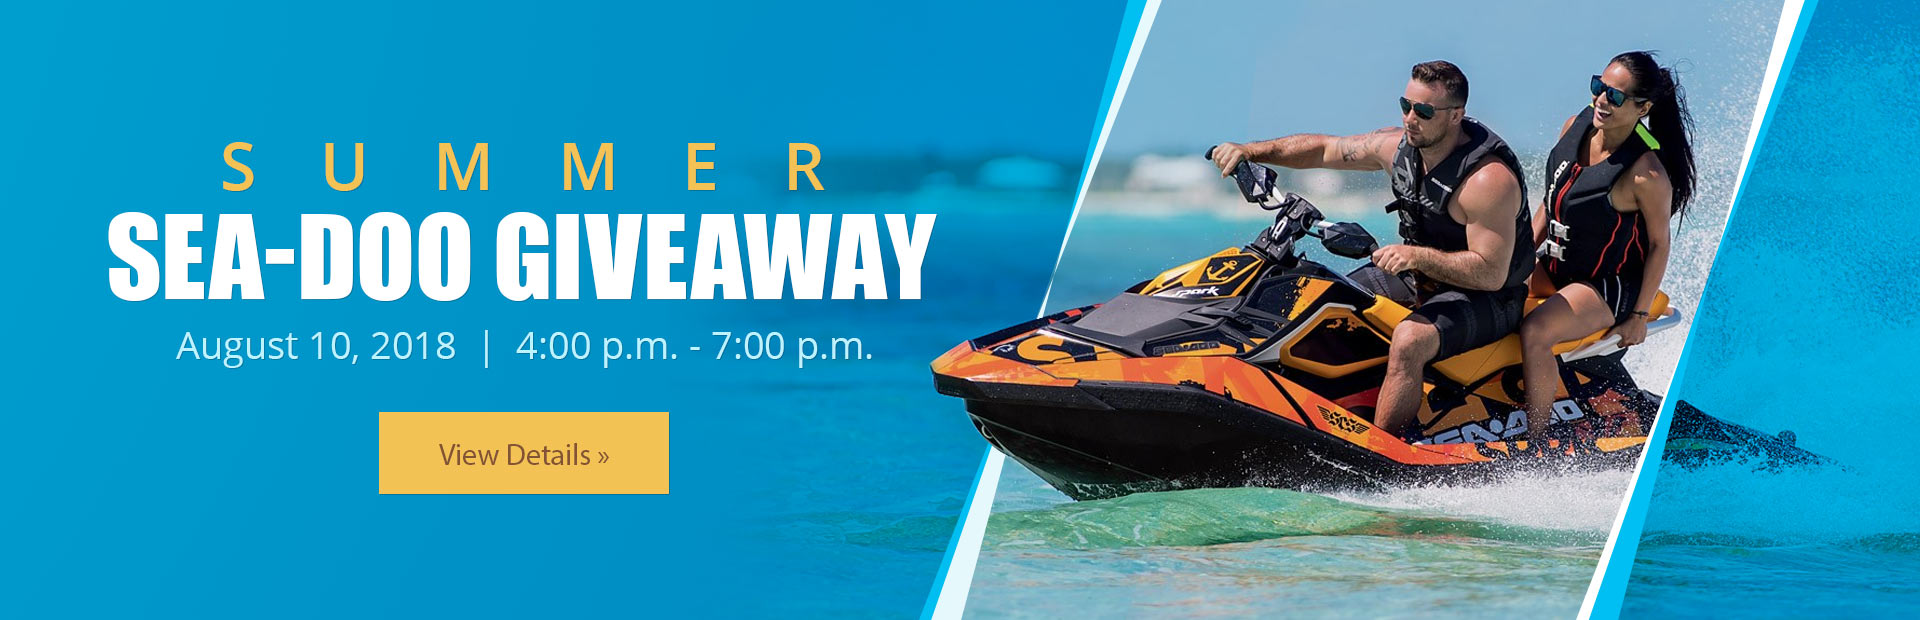 Join us August 10th for the Summer Sea-Doo Giveaway! Click here for details.